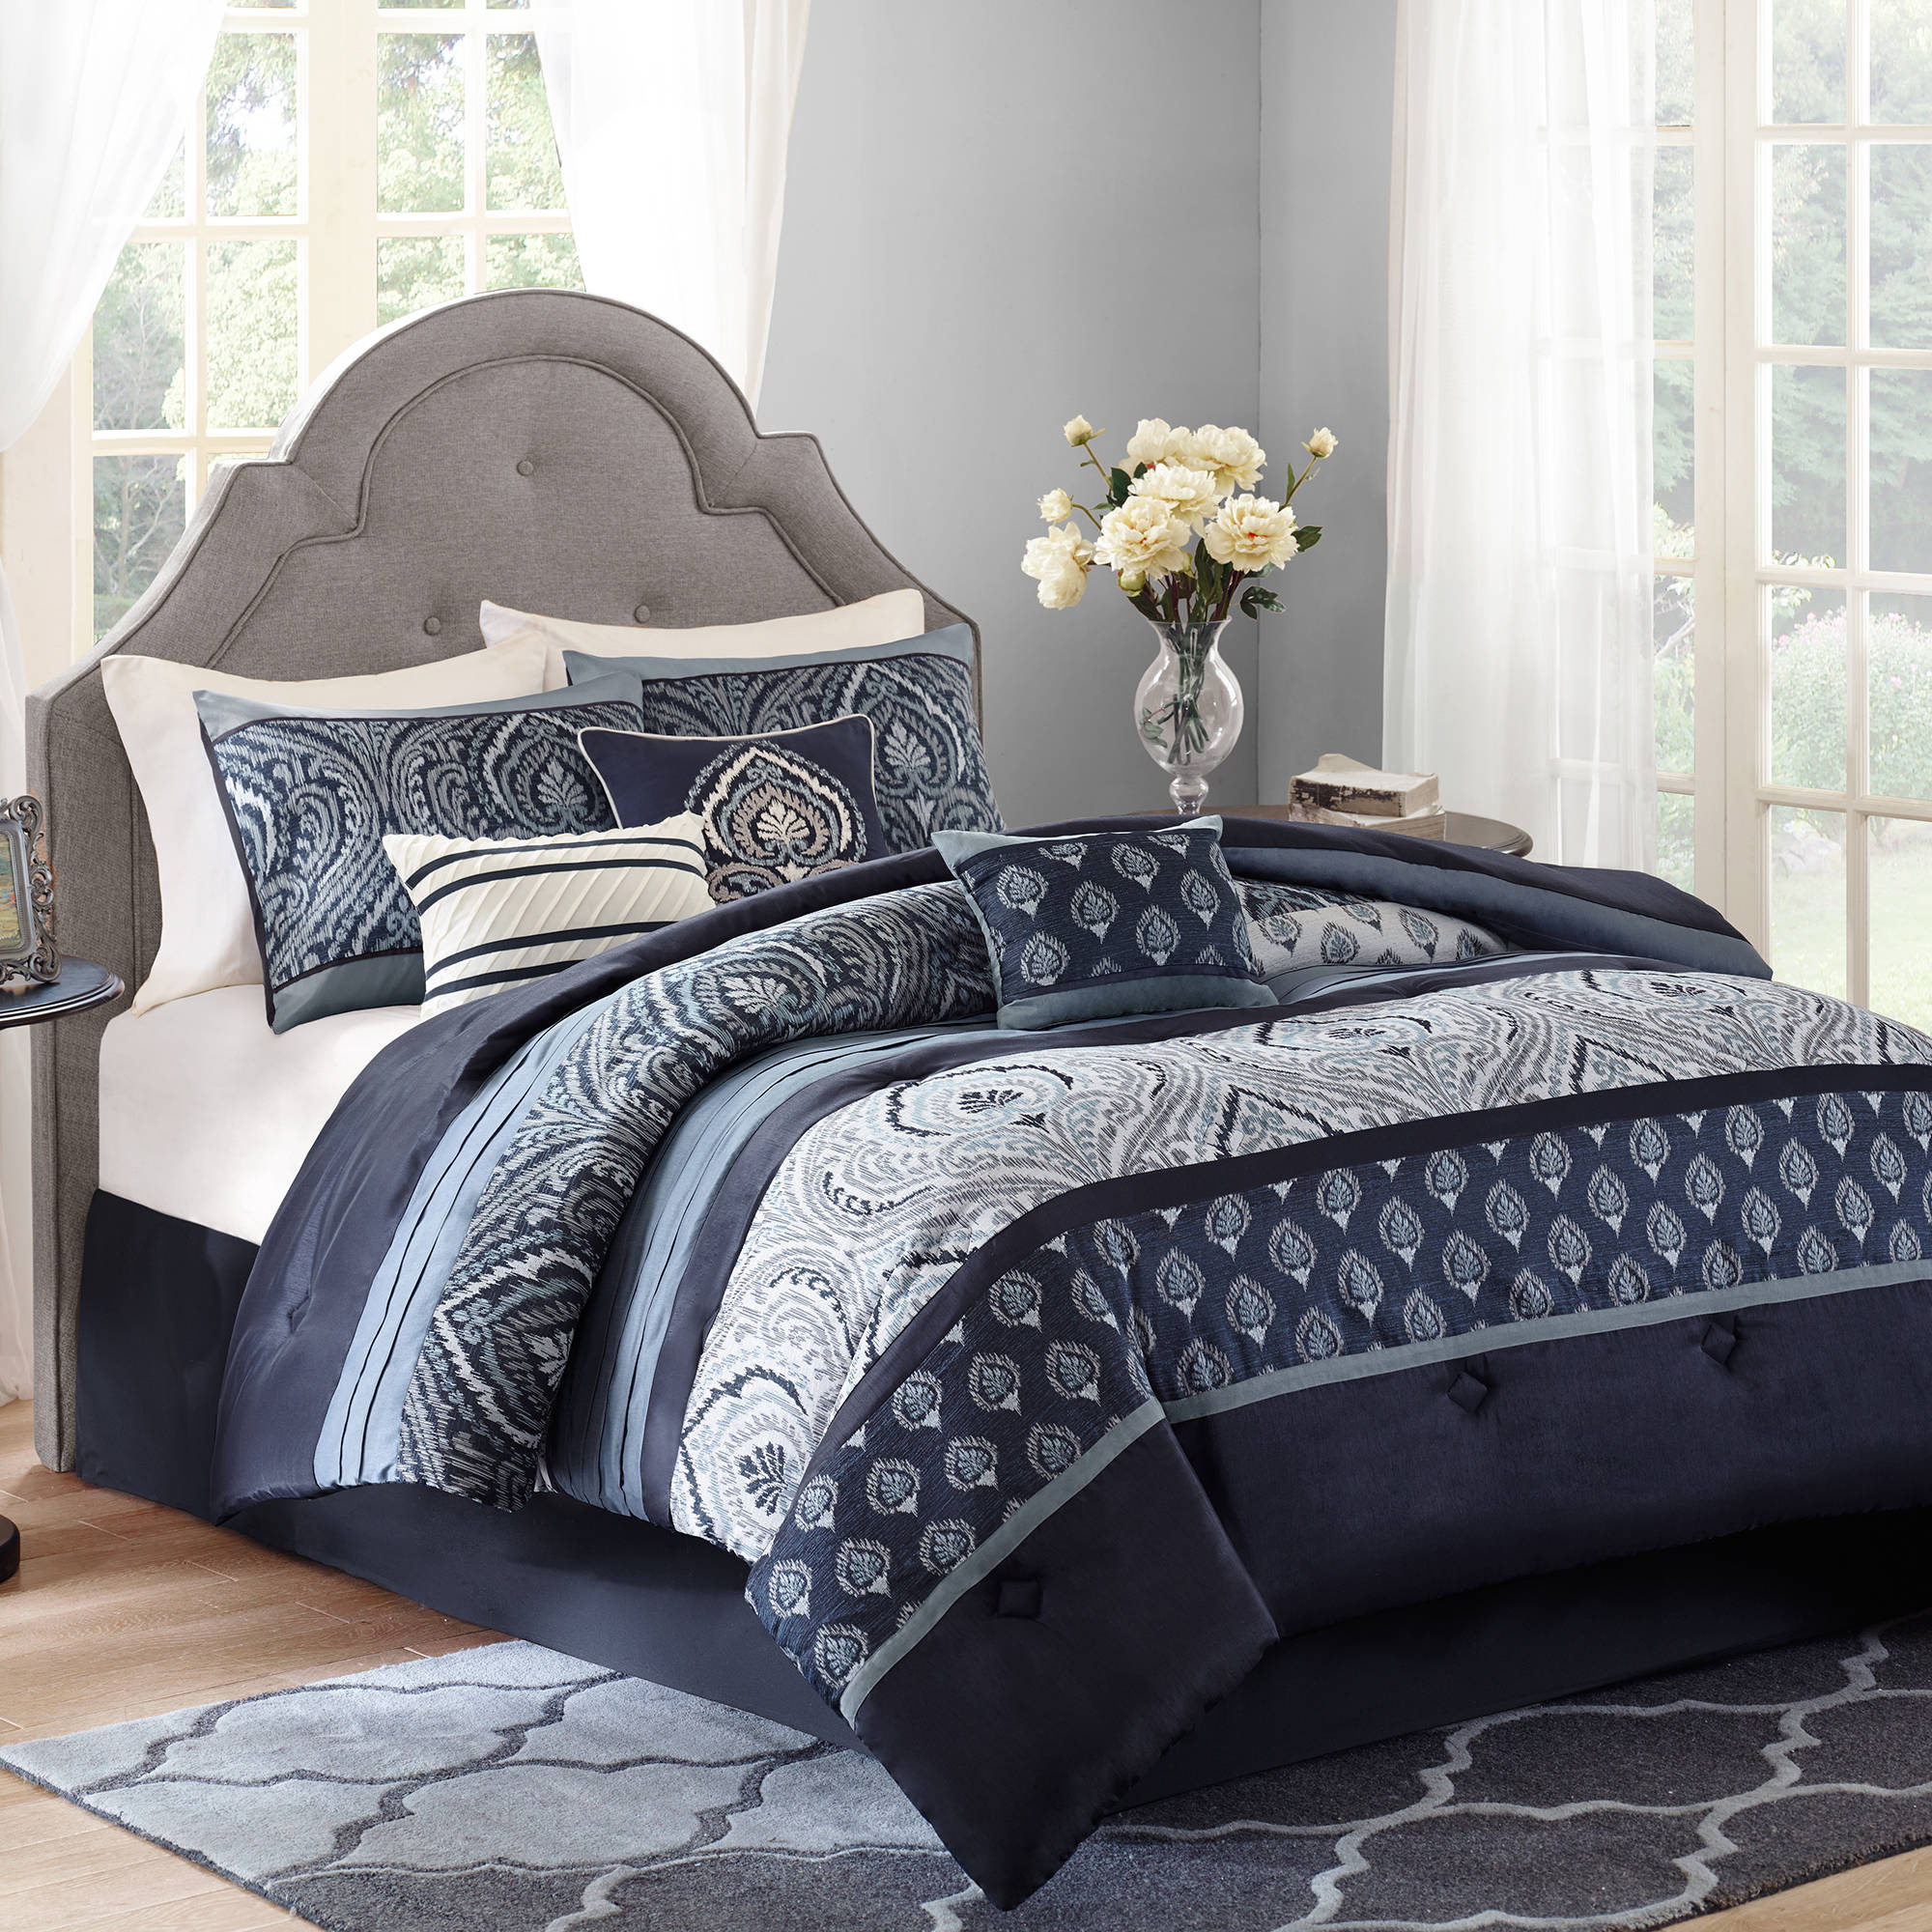 Better Homes and Gardens Indigo Paisley 7-Piece Bedding Comforter Set